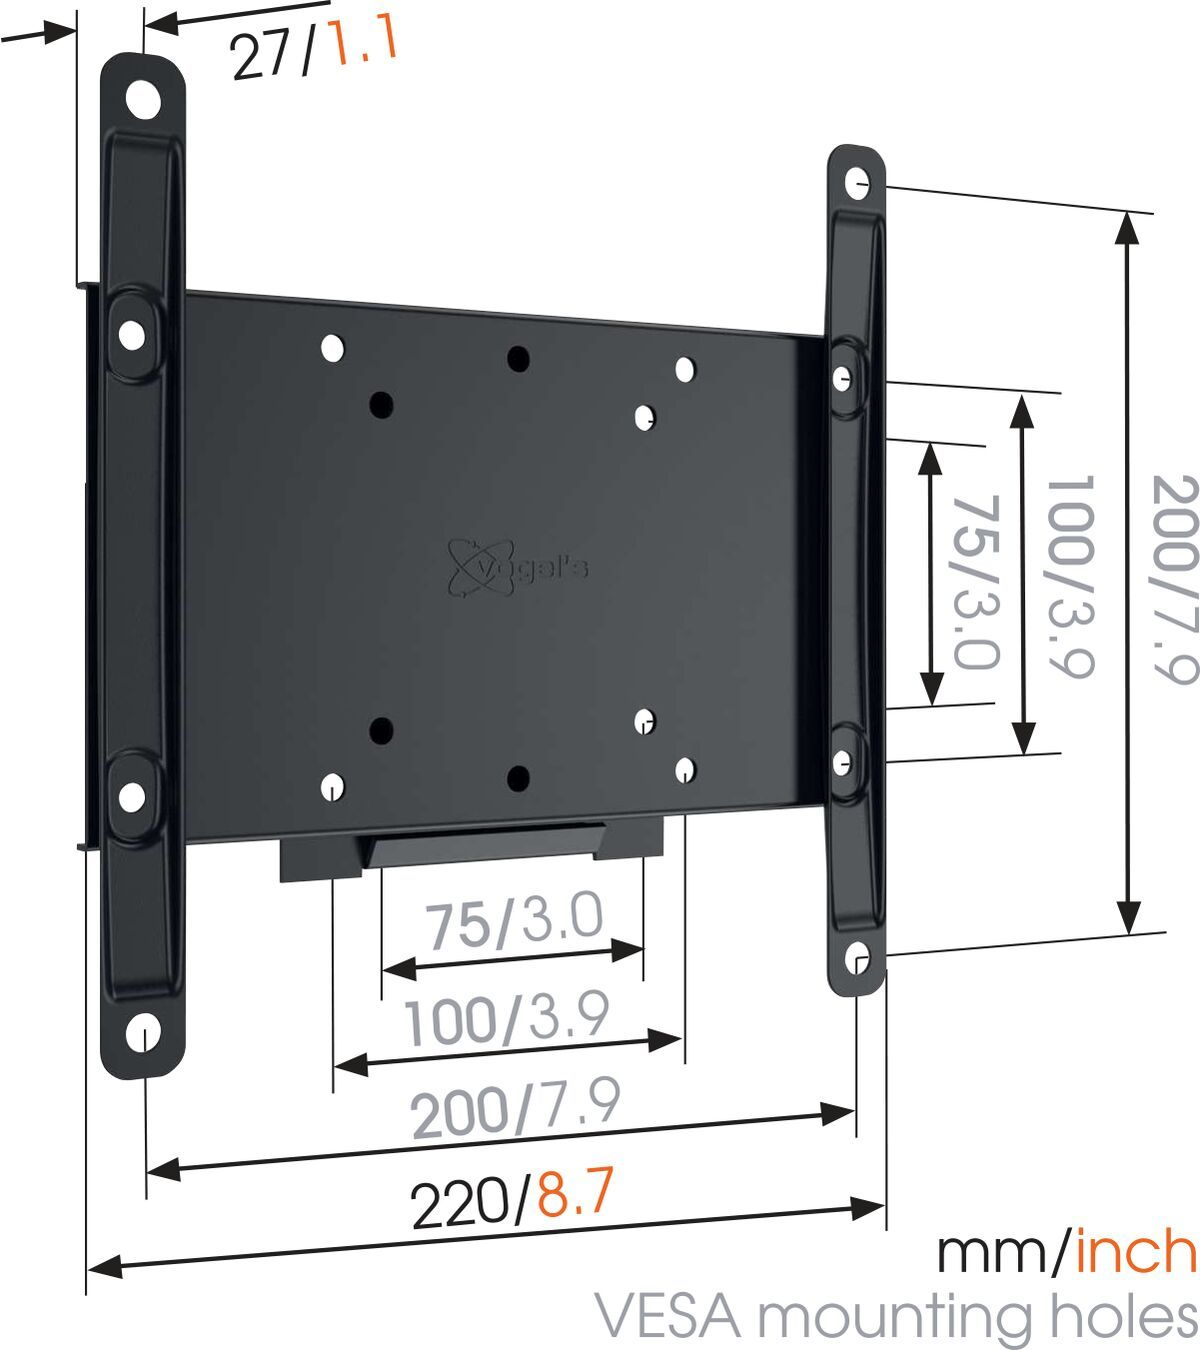 Vogel's MA 2000 (A1) Fixed TV Wall Mount - Suitable for 19 up to 40 inch TVs up to 30 kg - Dimensions